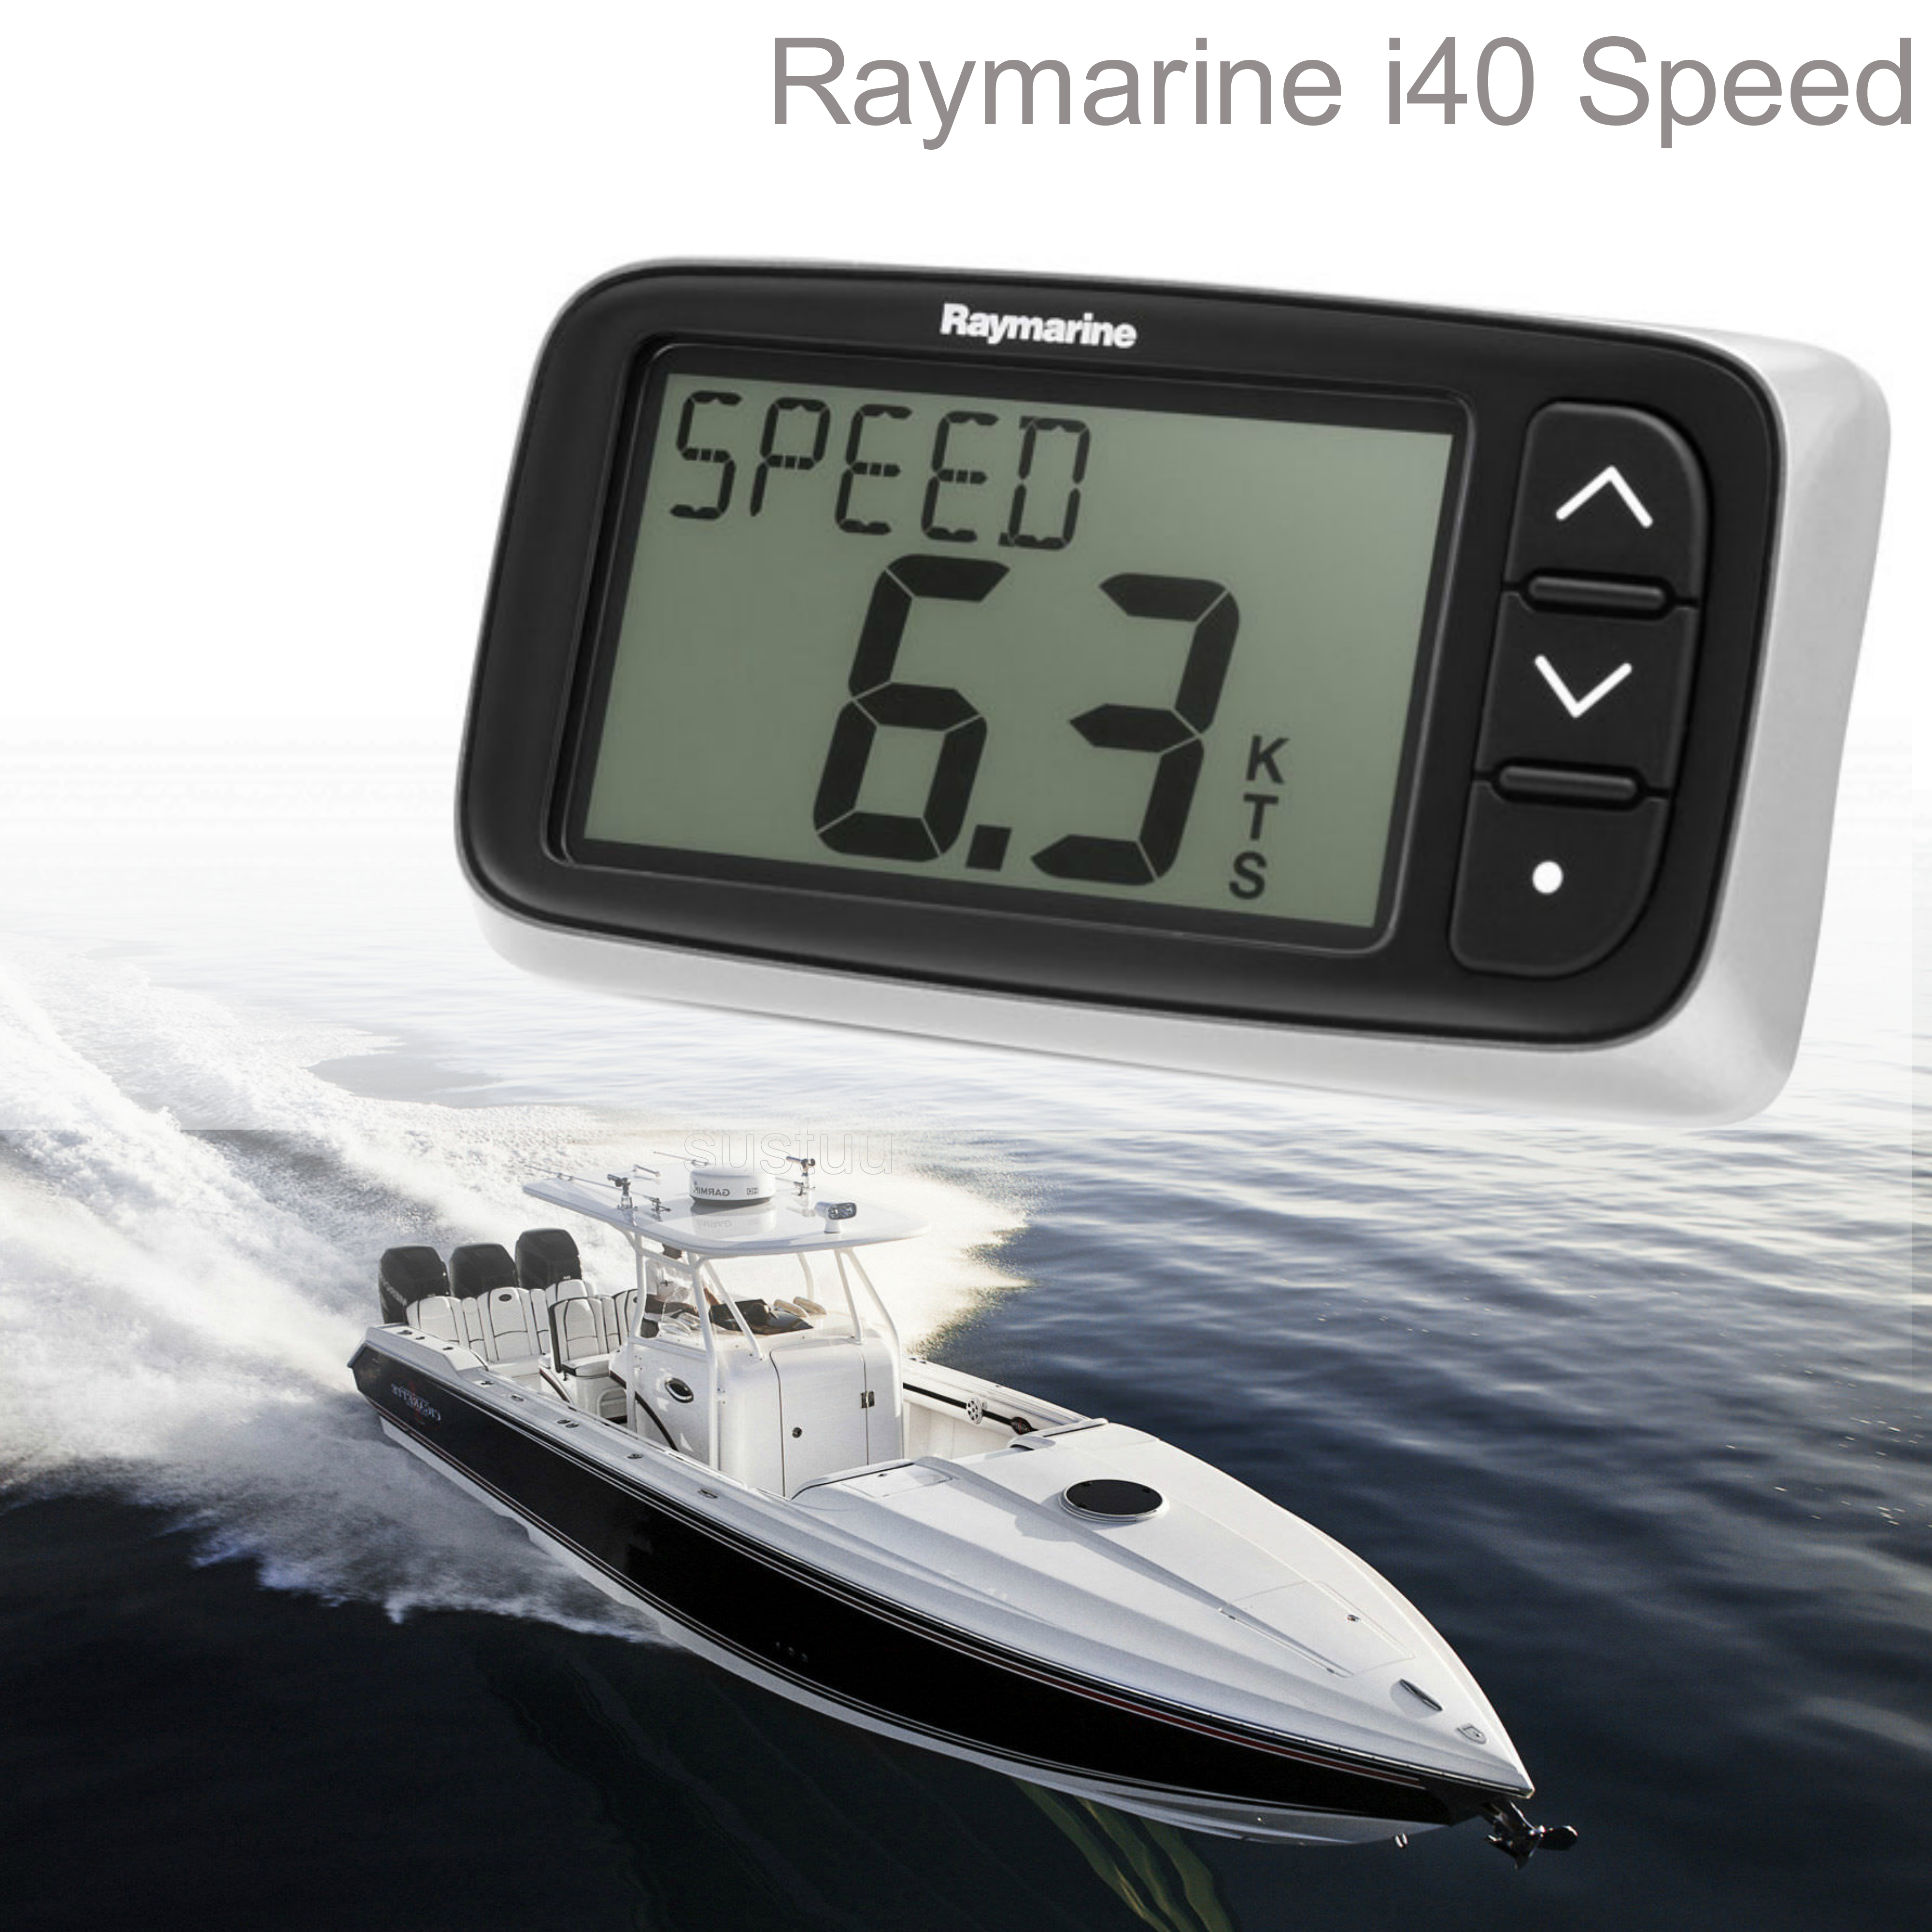 Raymarine E70063|i40 Speed Instrument|Sharp LCDs Display|Low Power|For Yacht & Ribs